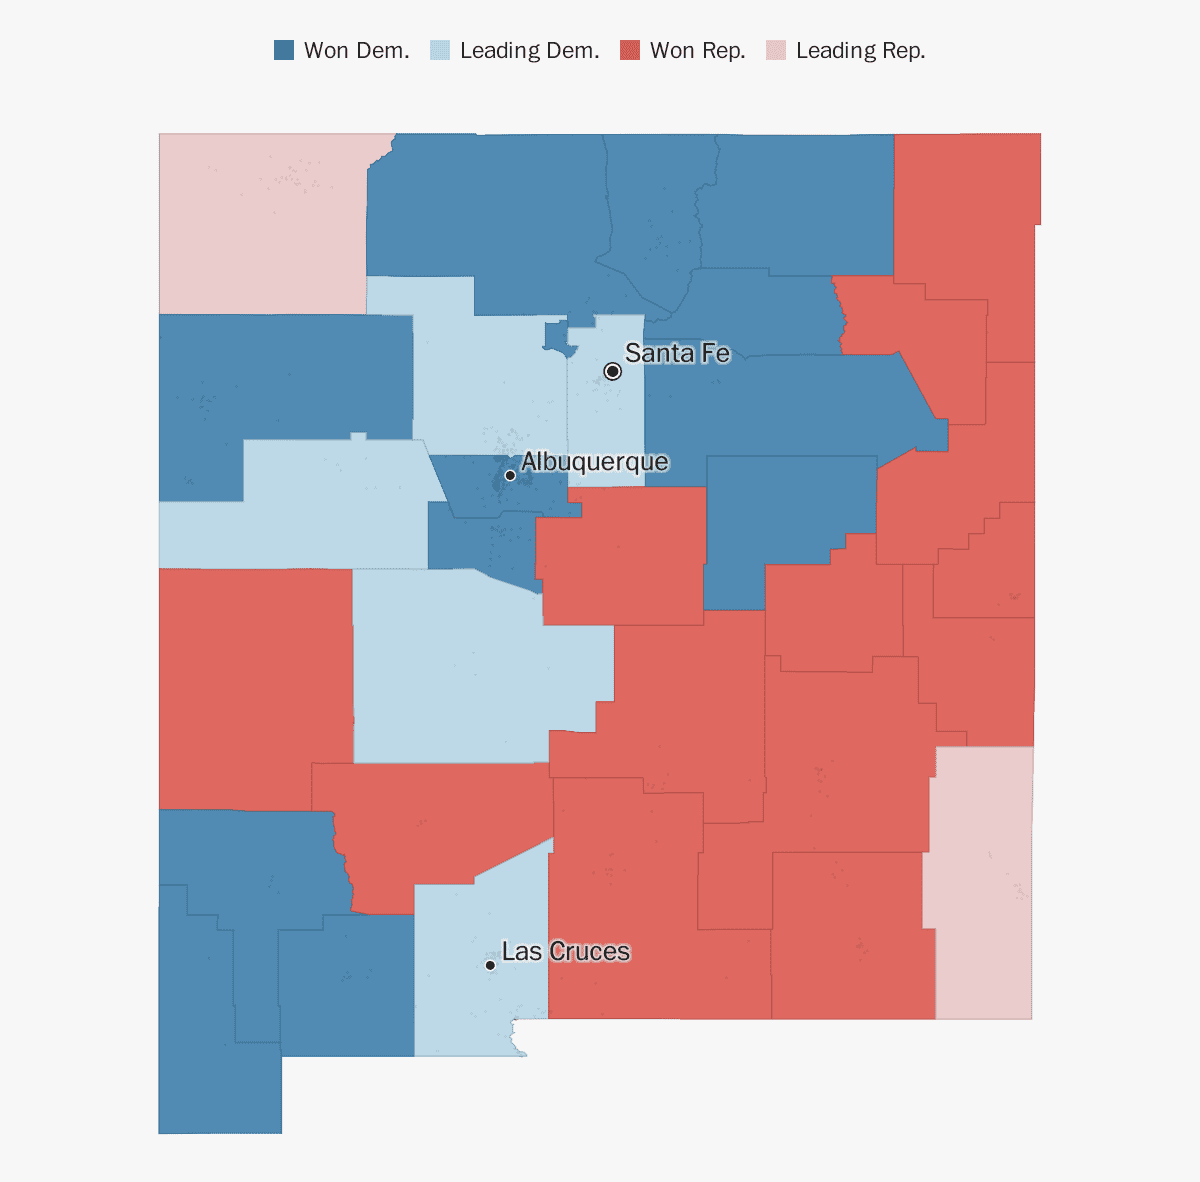 New Mexico election results 2018 - The Washington Post